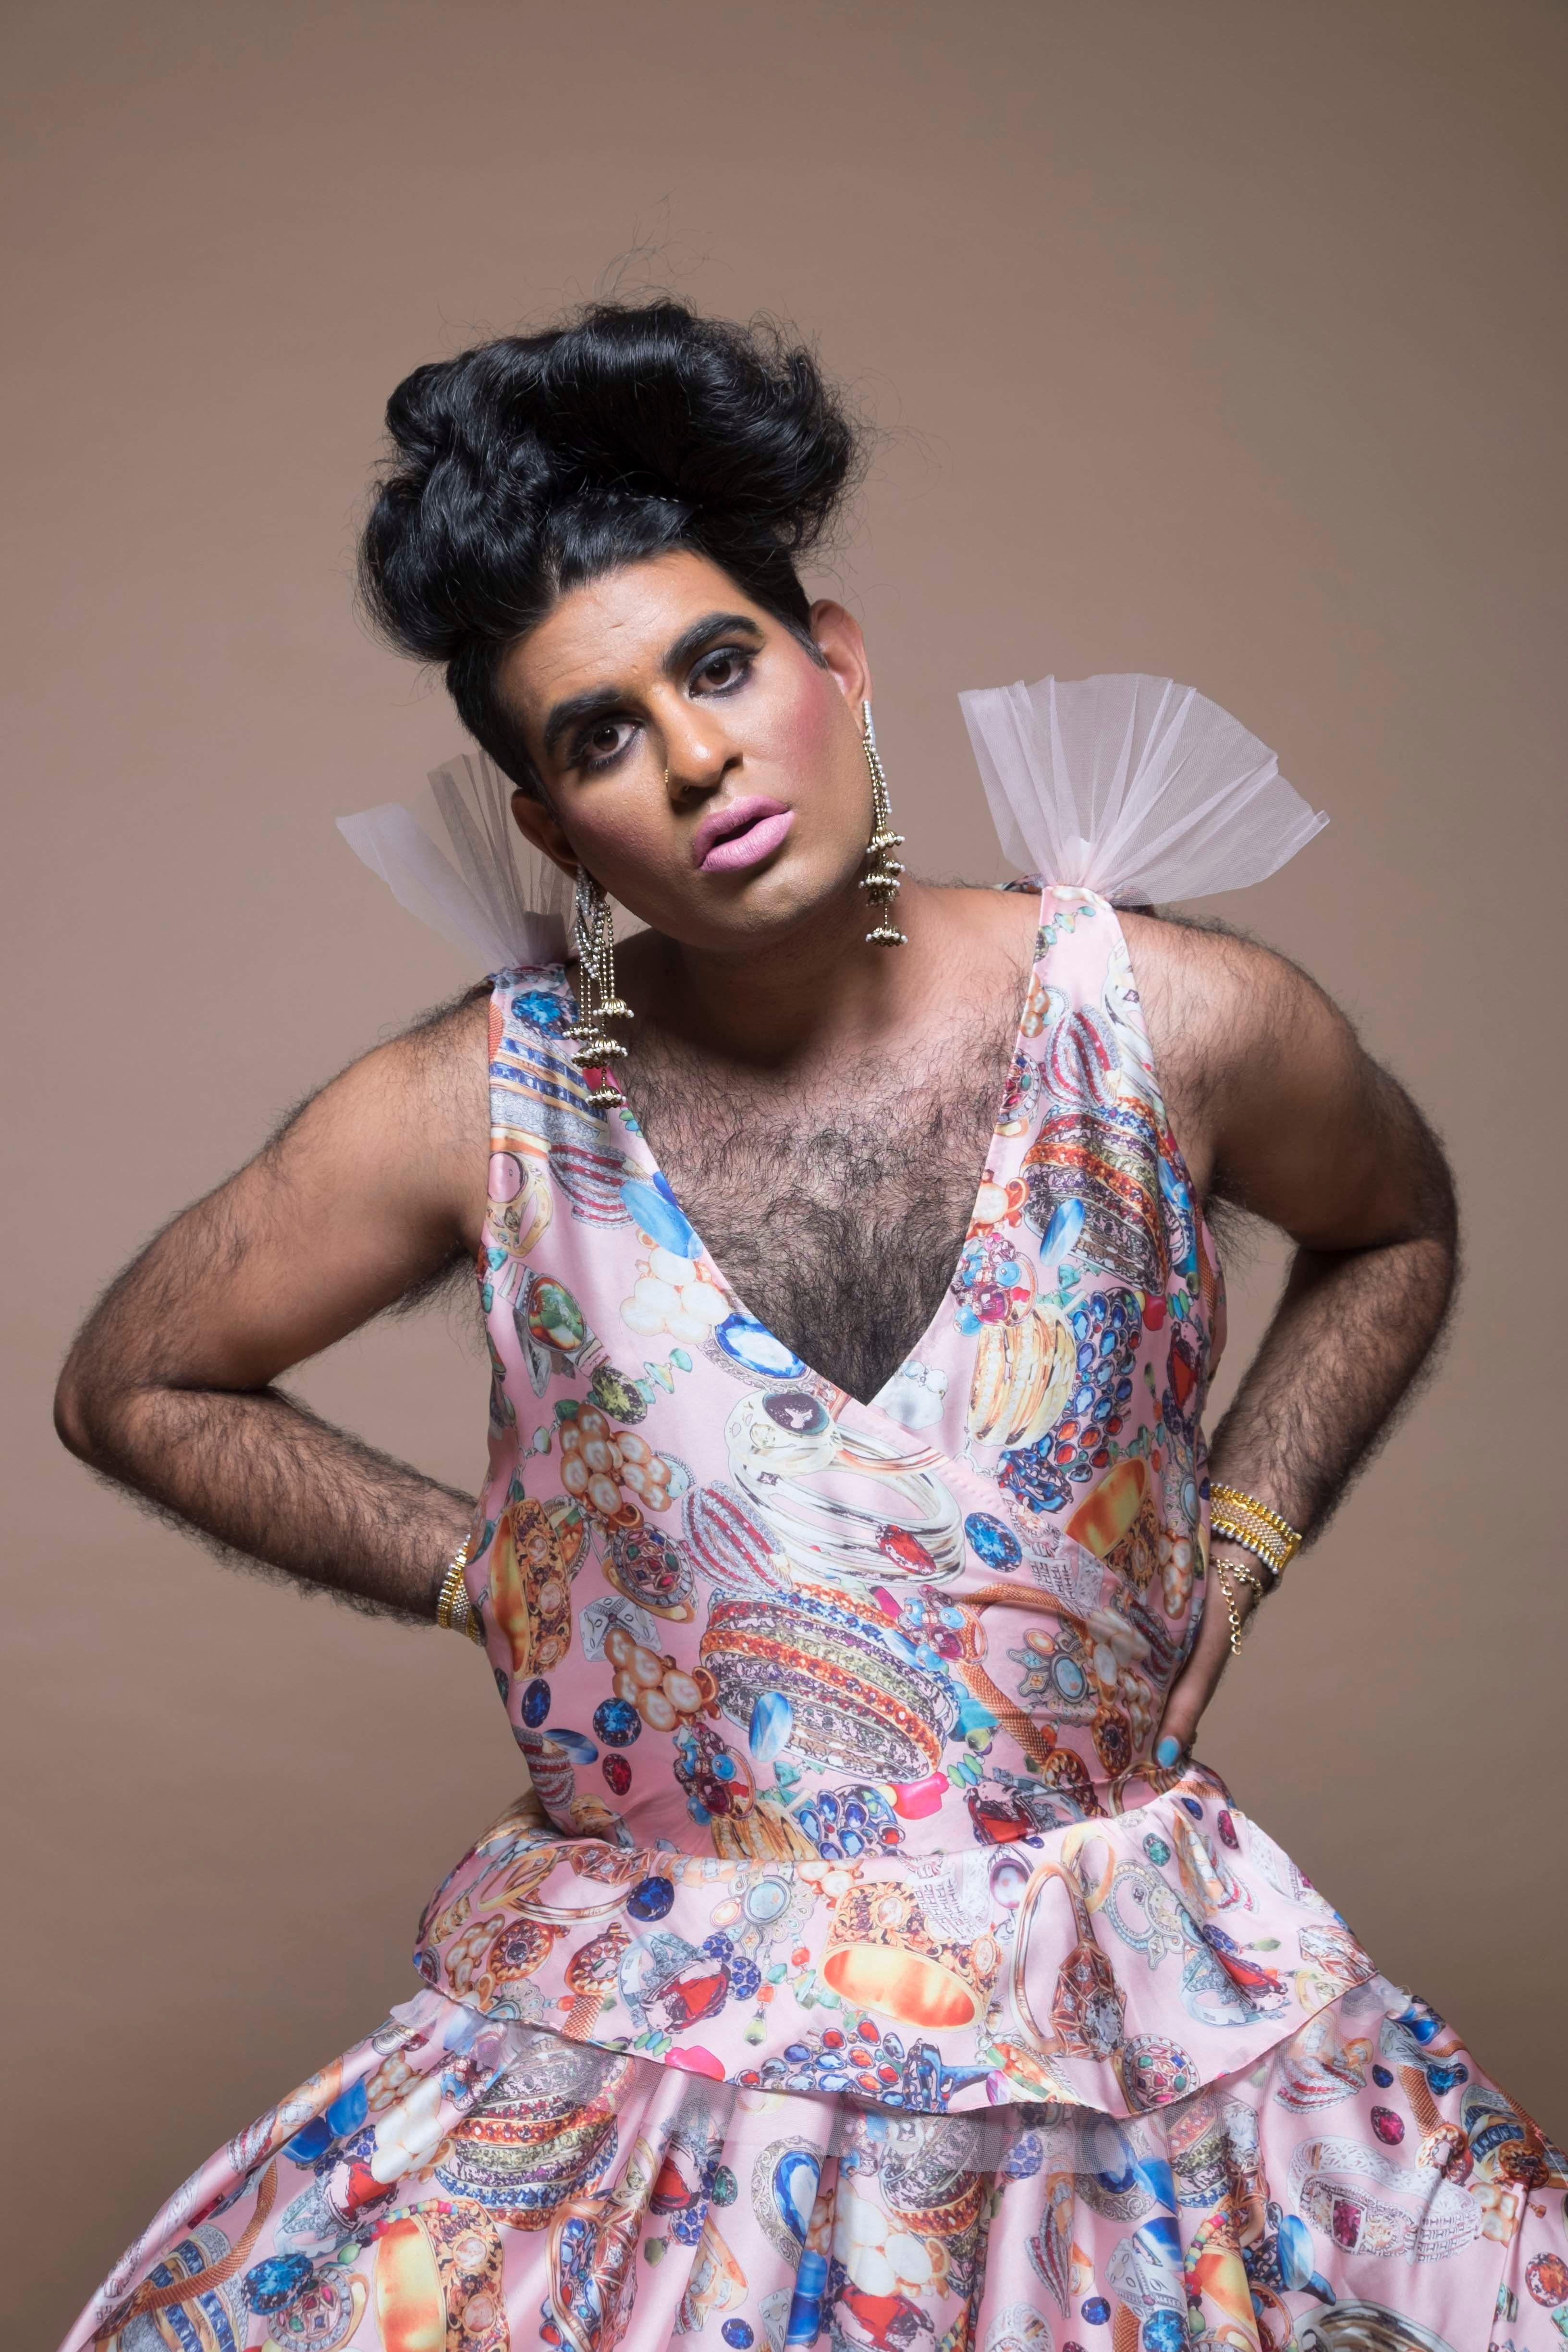 Alok Vaid-Menon is an unapologetic voice in the landscape of queer and trans performance.